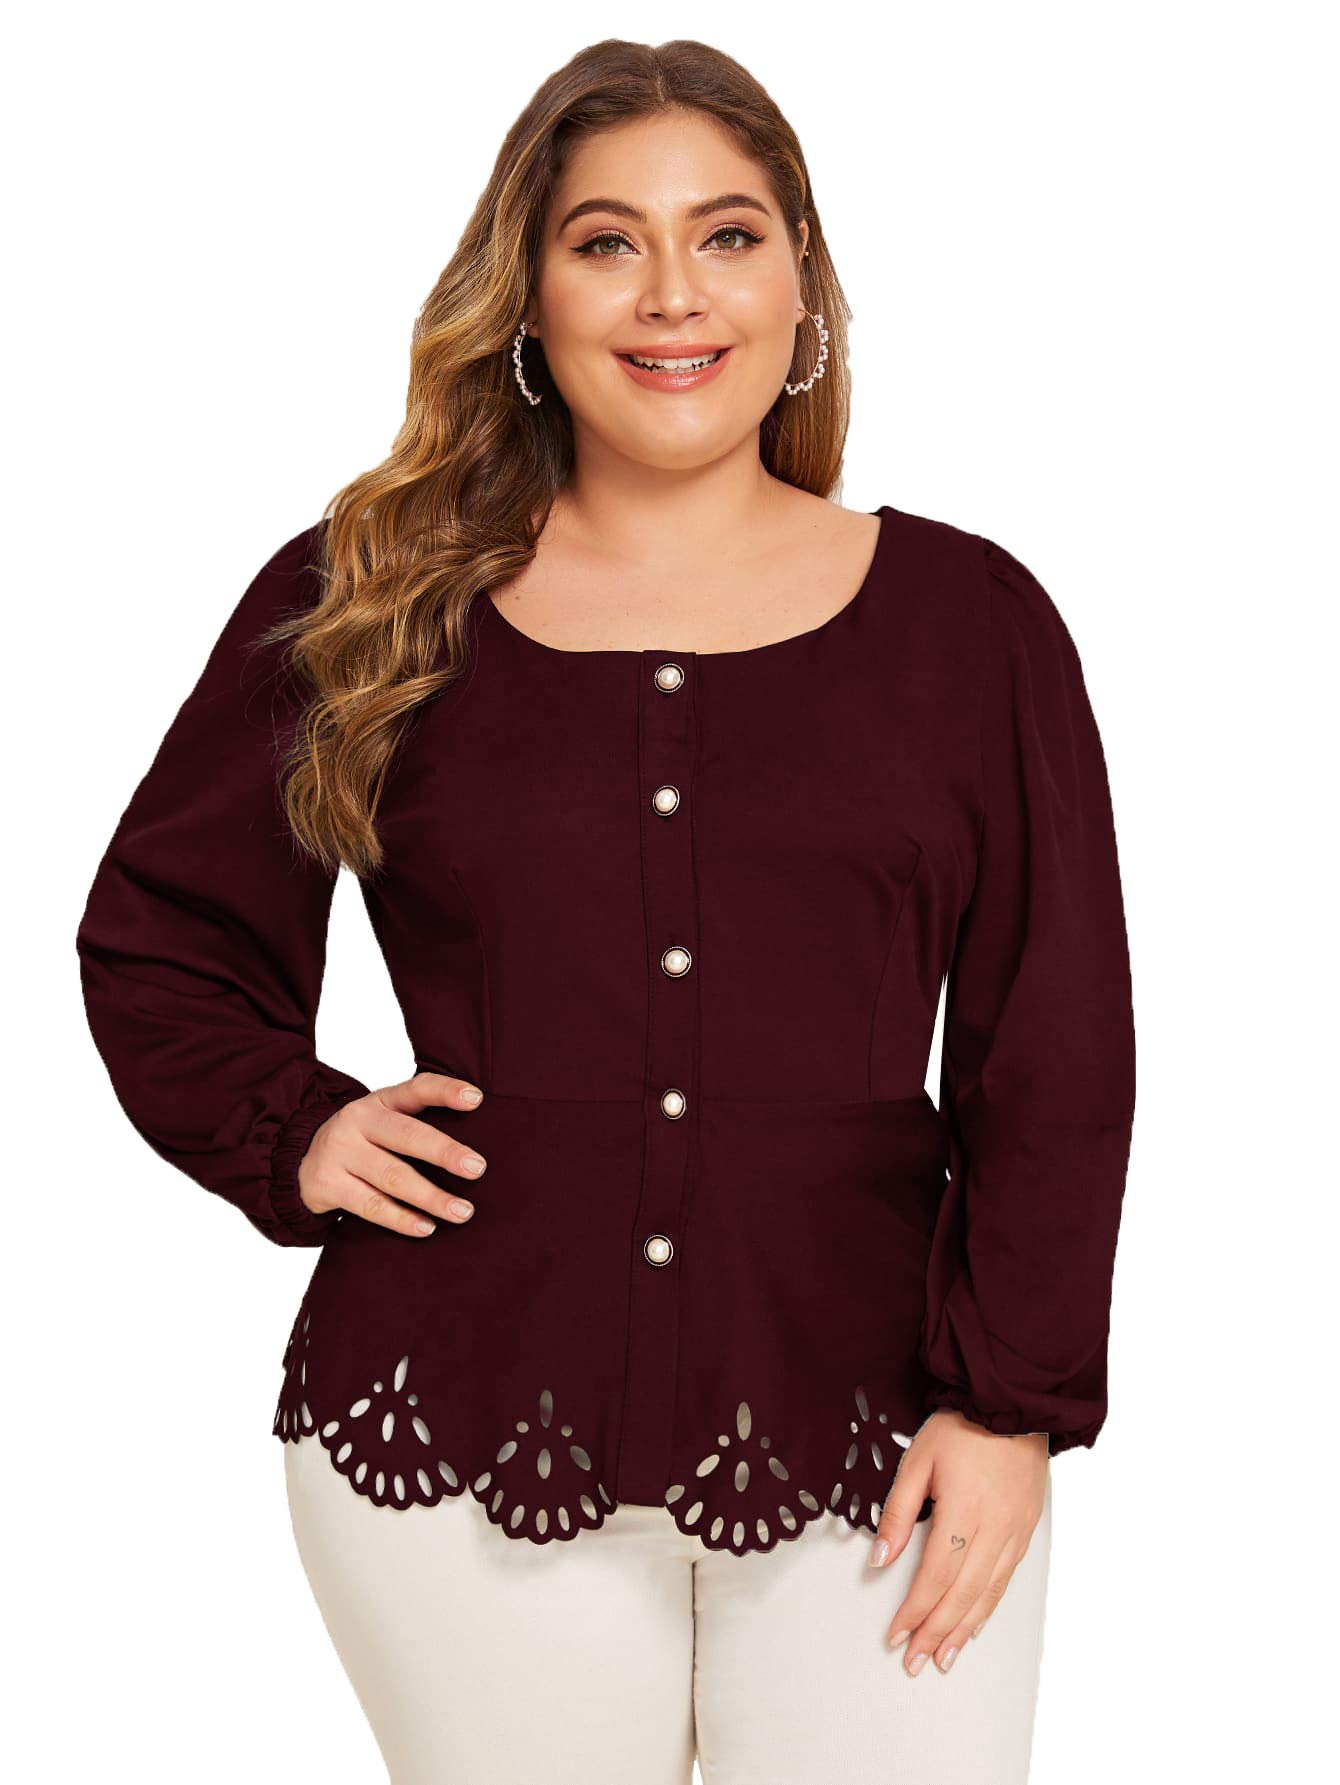 Romwe Women's Plus Size Long Sleeve Buttons Hollow Out Scalloped Blouse Top